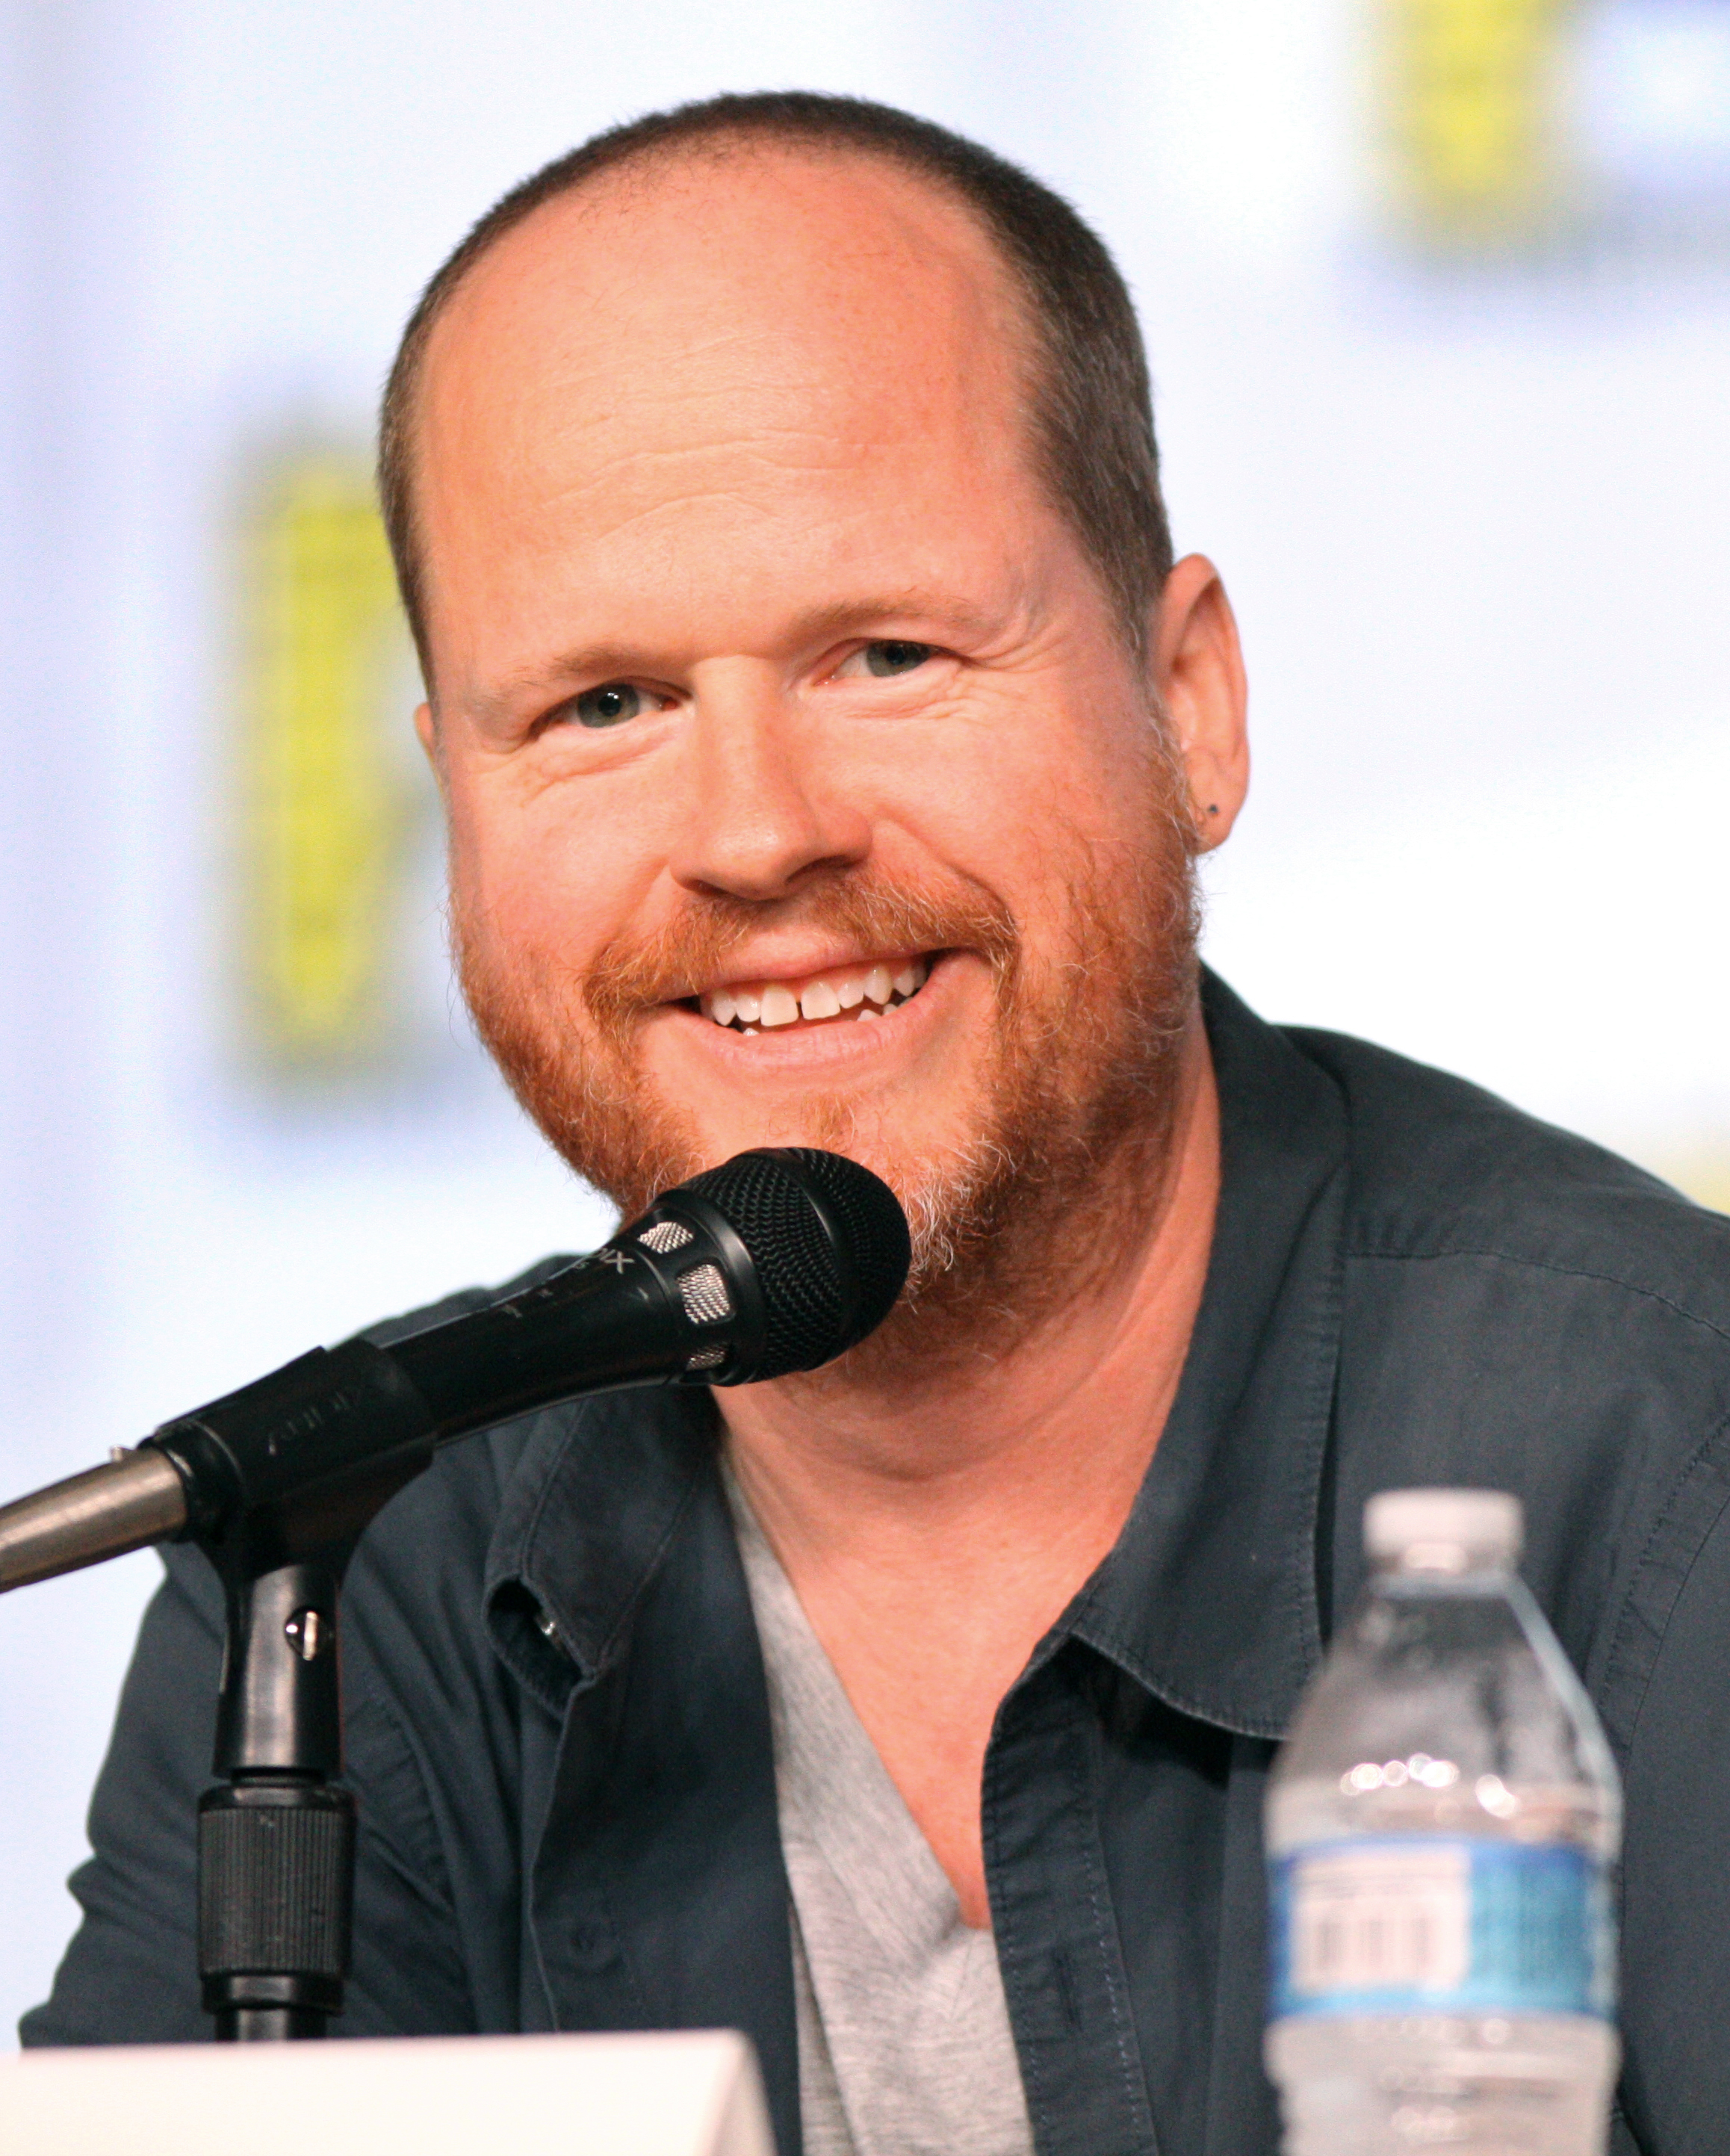 Joss Whedon by Gage Skidmore 4 Firefly Friday Focus: Joss Whedon